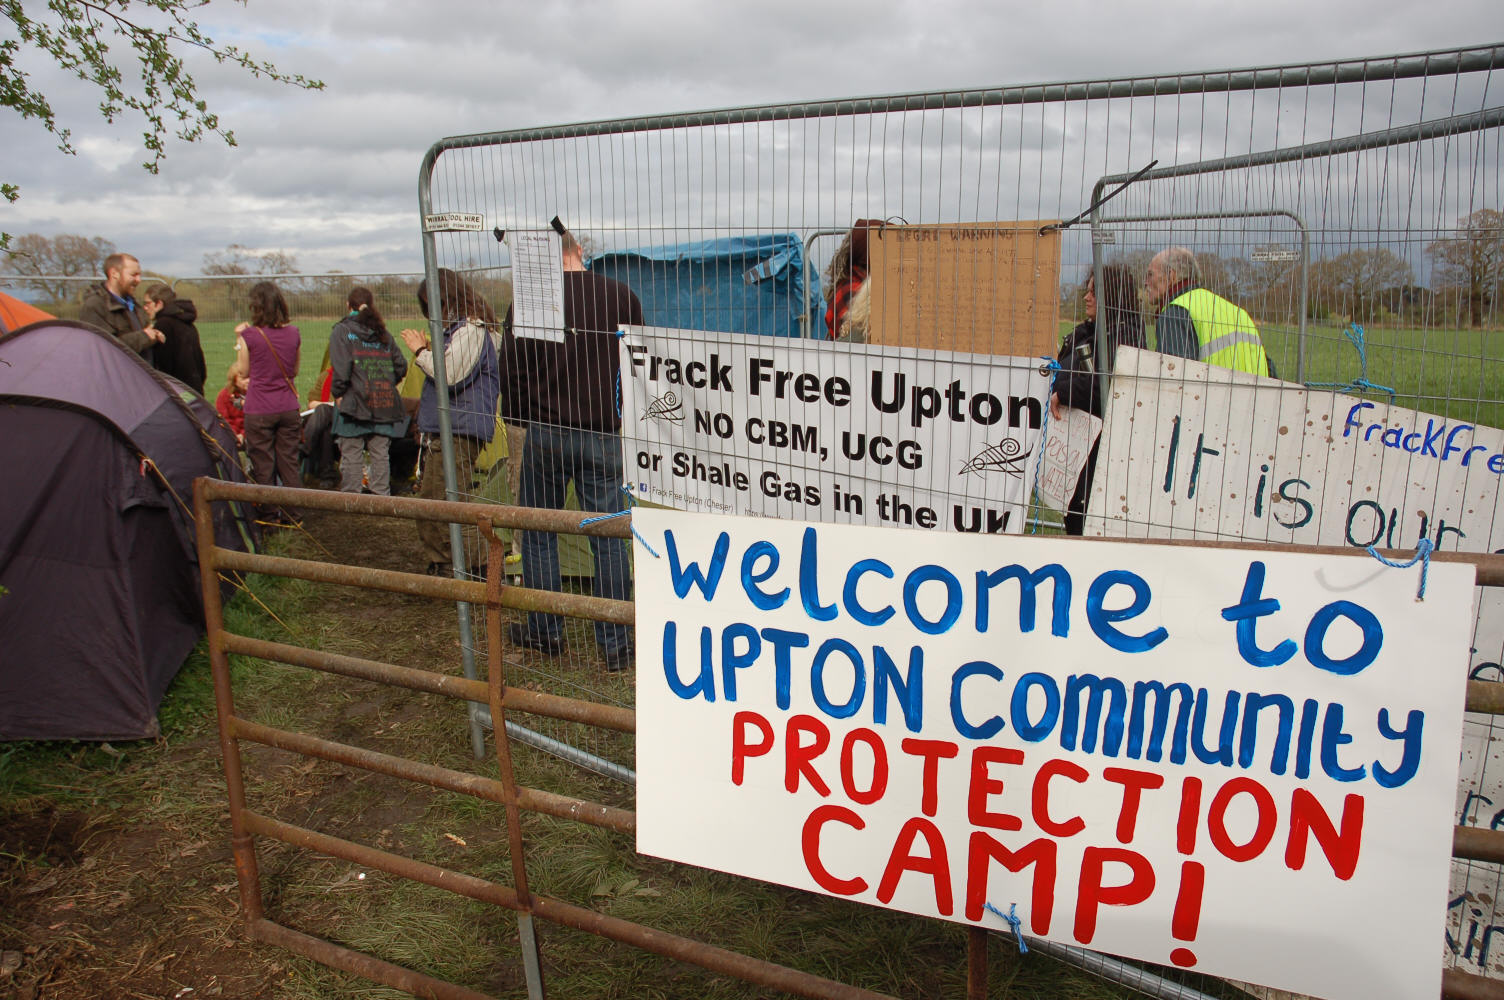 The policing of anti-fracking protests 'violent' and 'unpredictable', according to monitoring group